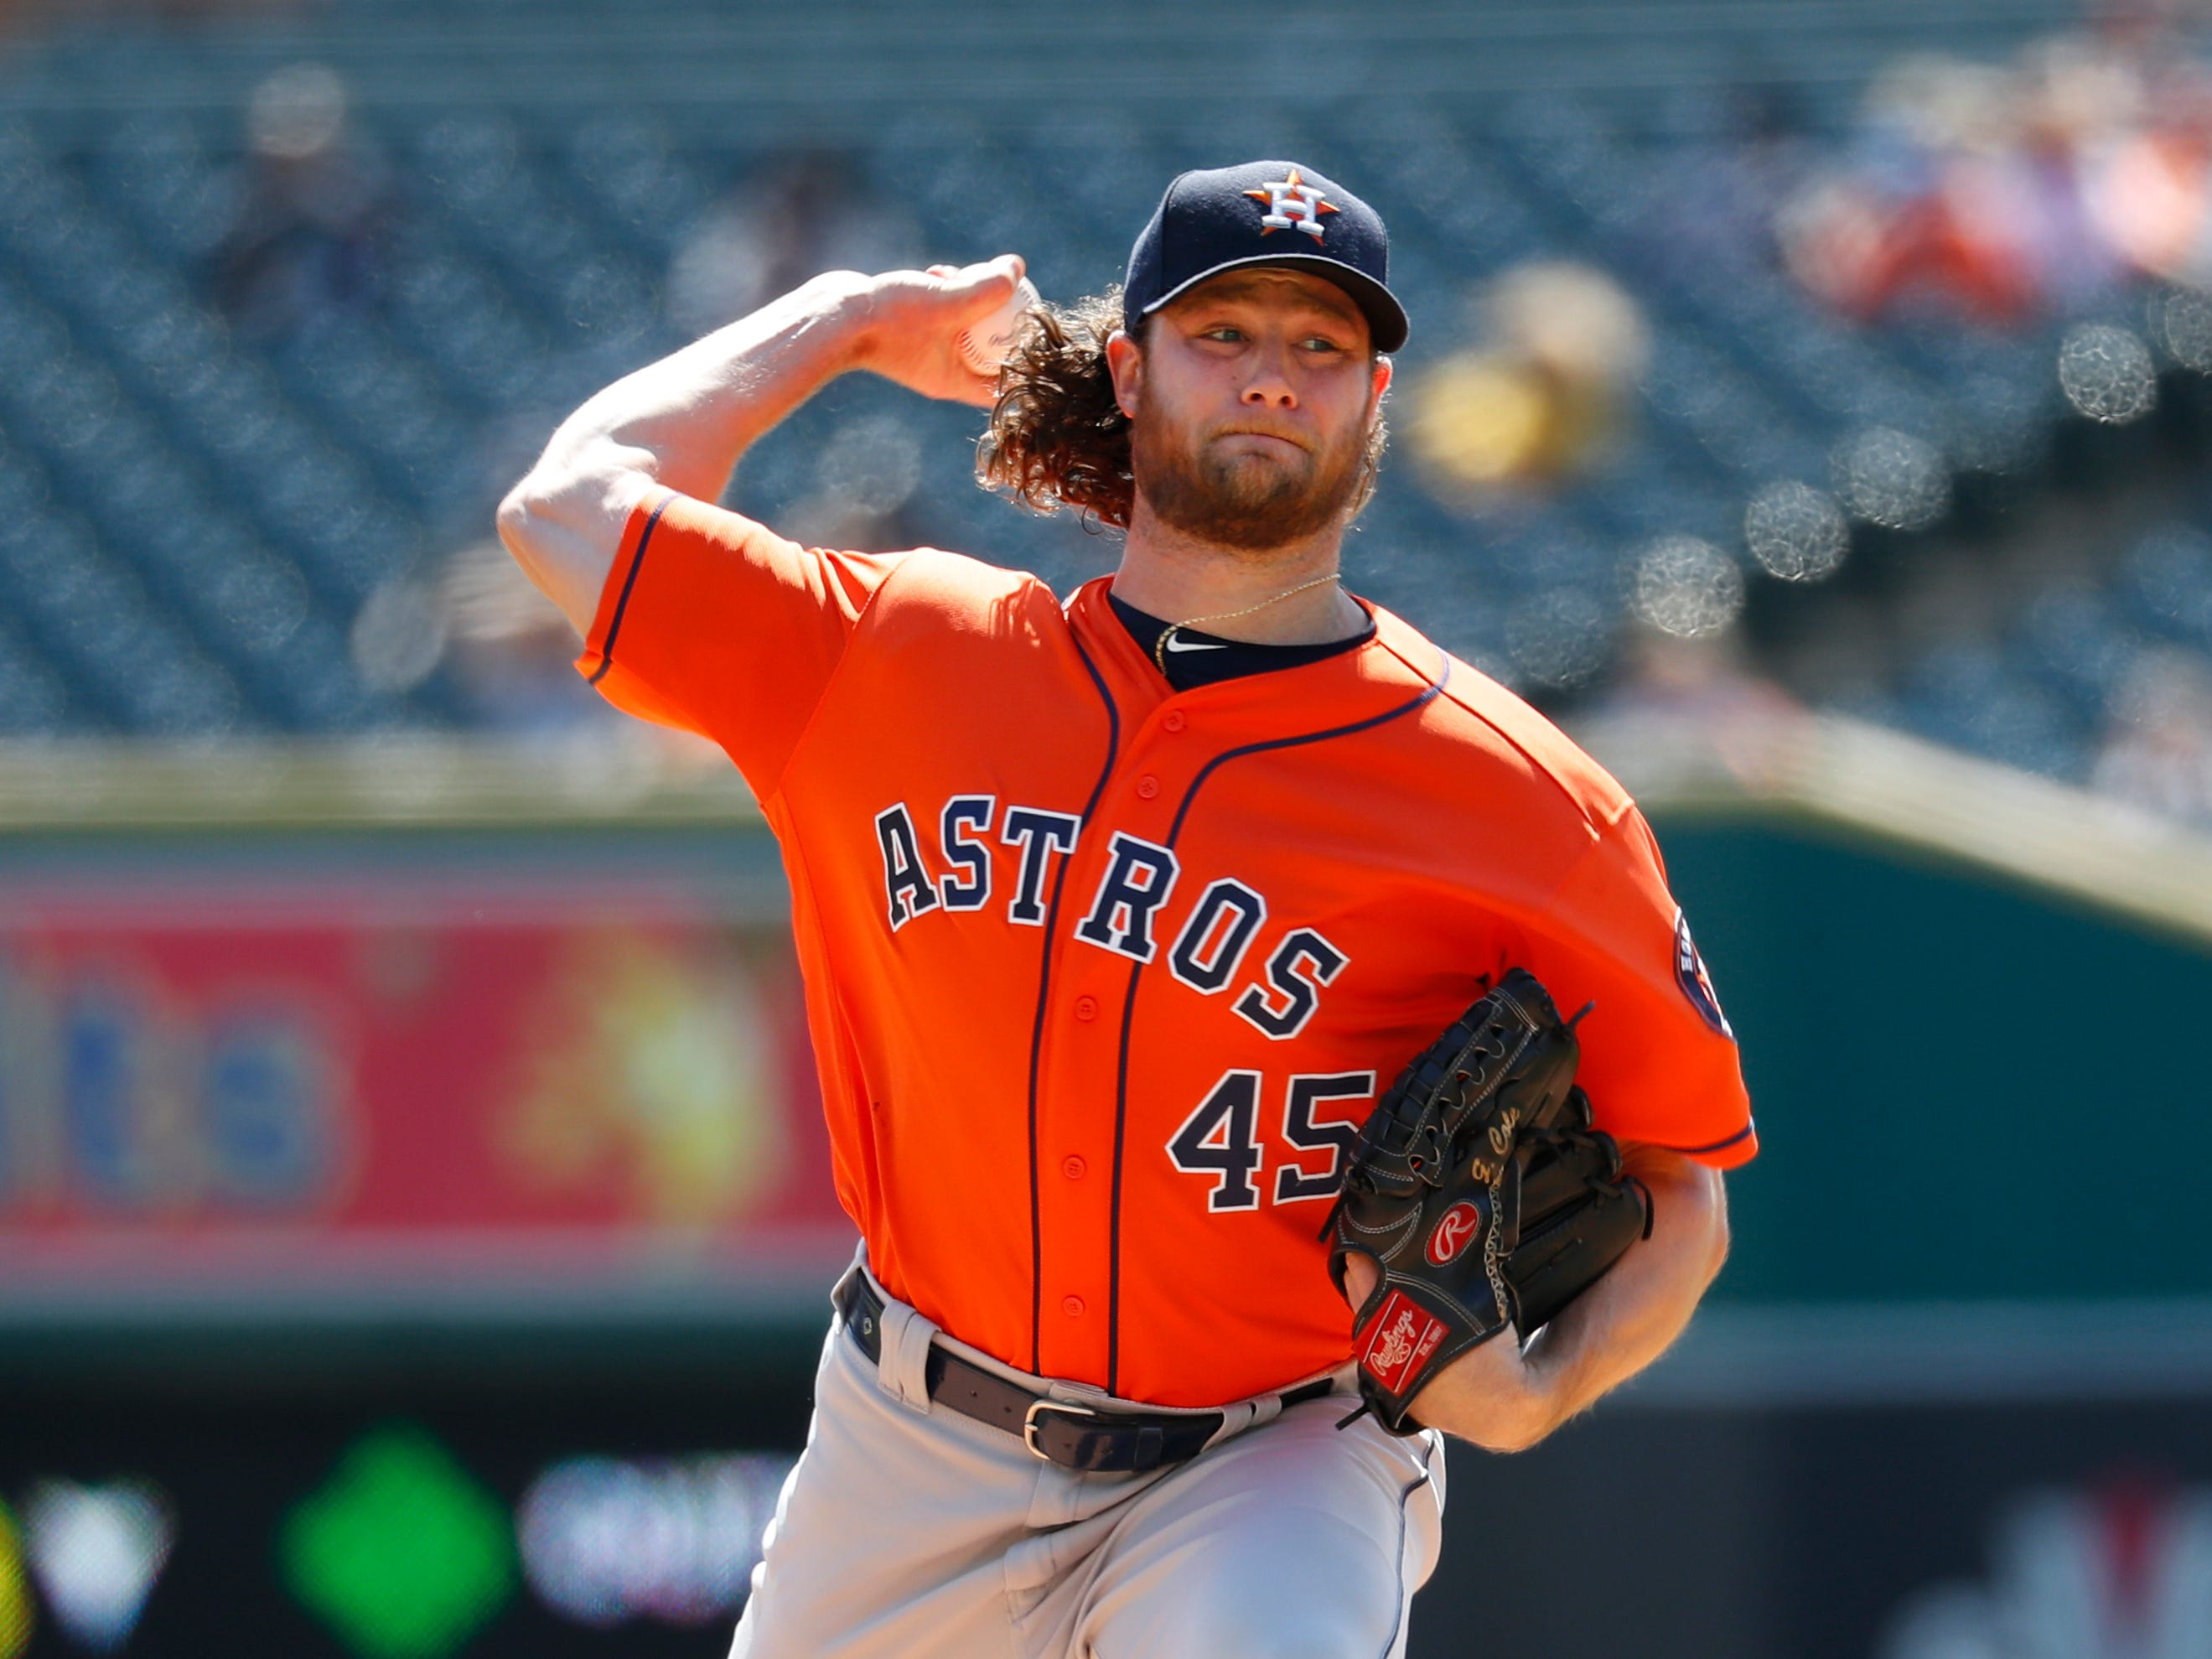 Houston Astros pitcher Gerrit Cole throws against the Detroit Tigers in the first inning.